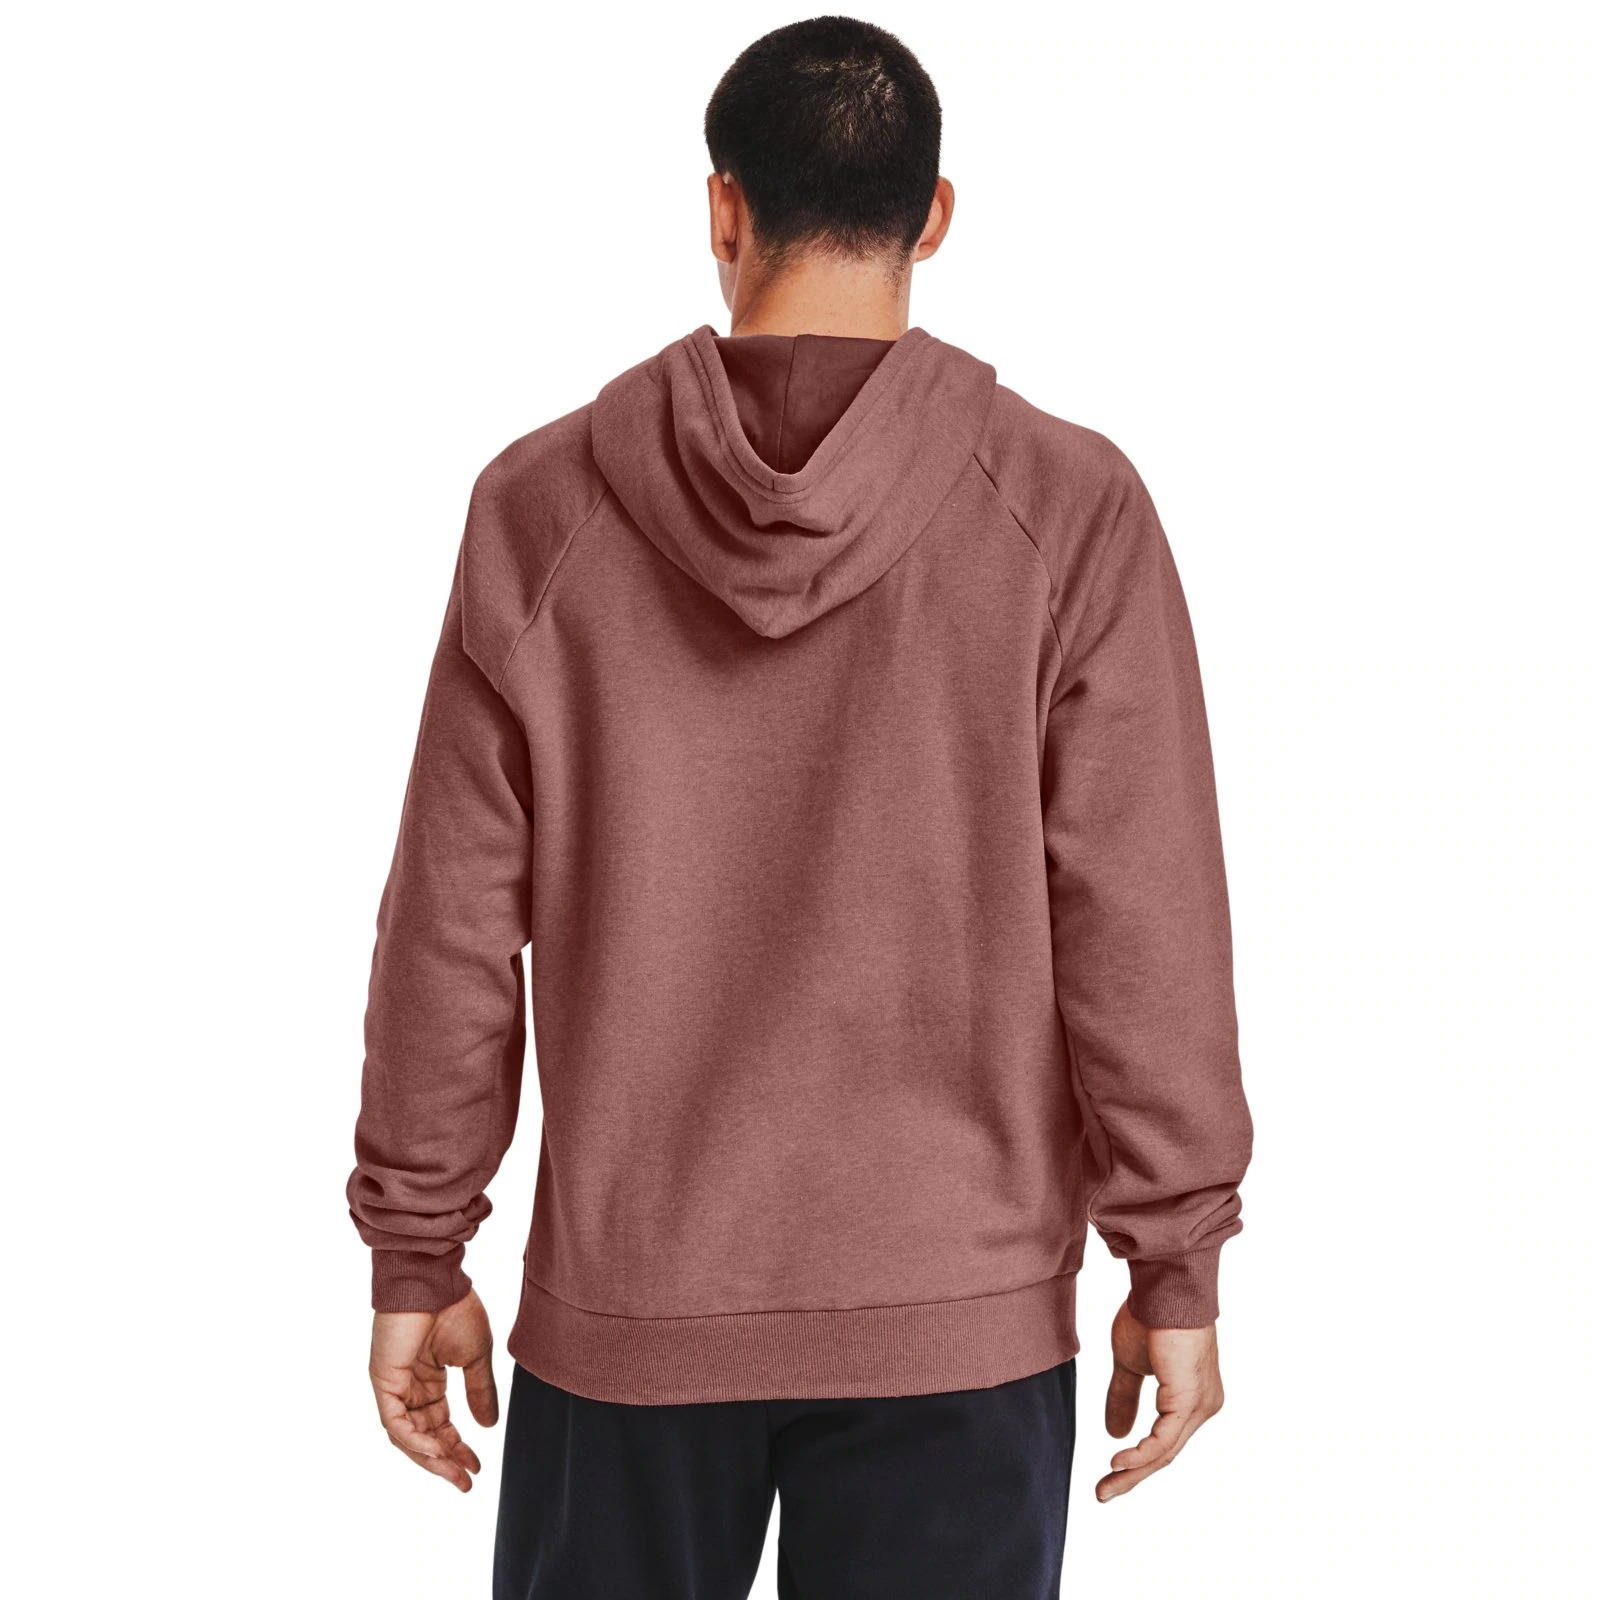 Худи Rival Fleece Hoodie-RED Under Armour Розовый фото 2